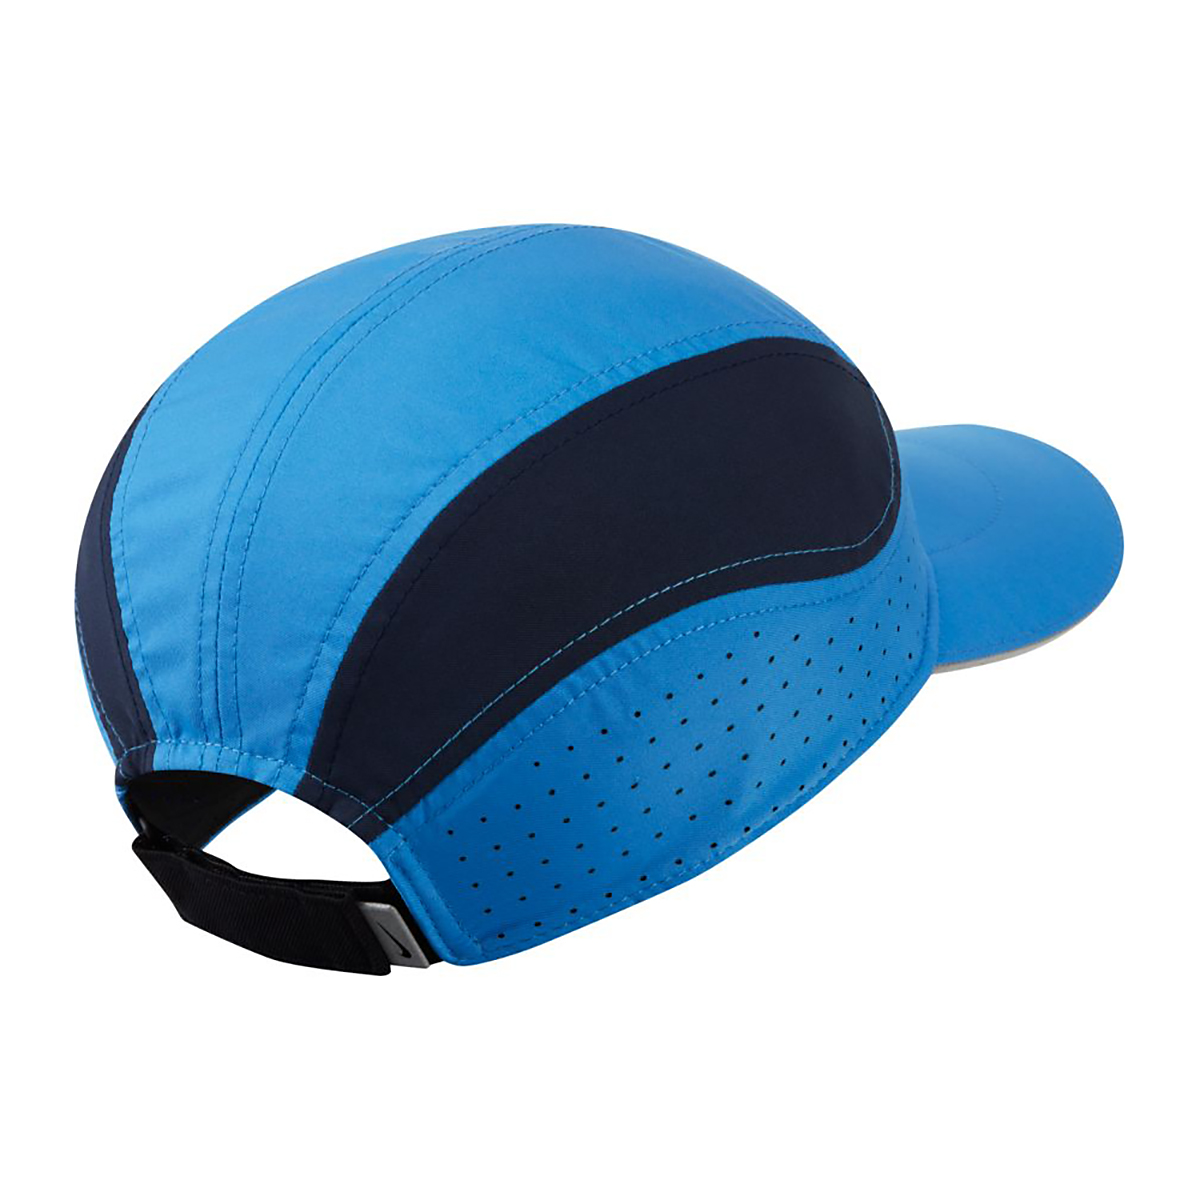 Nike AeroBill Tailwind Running Cap - Color: Blue, Blue, large, image 2